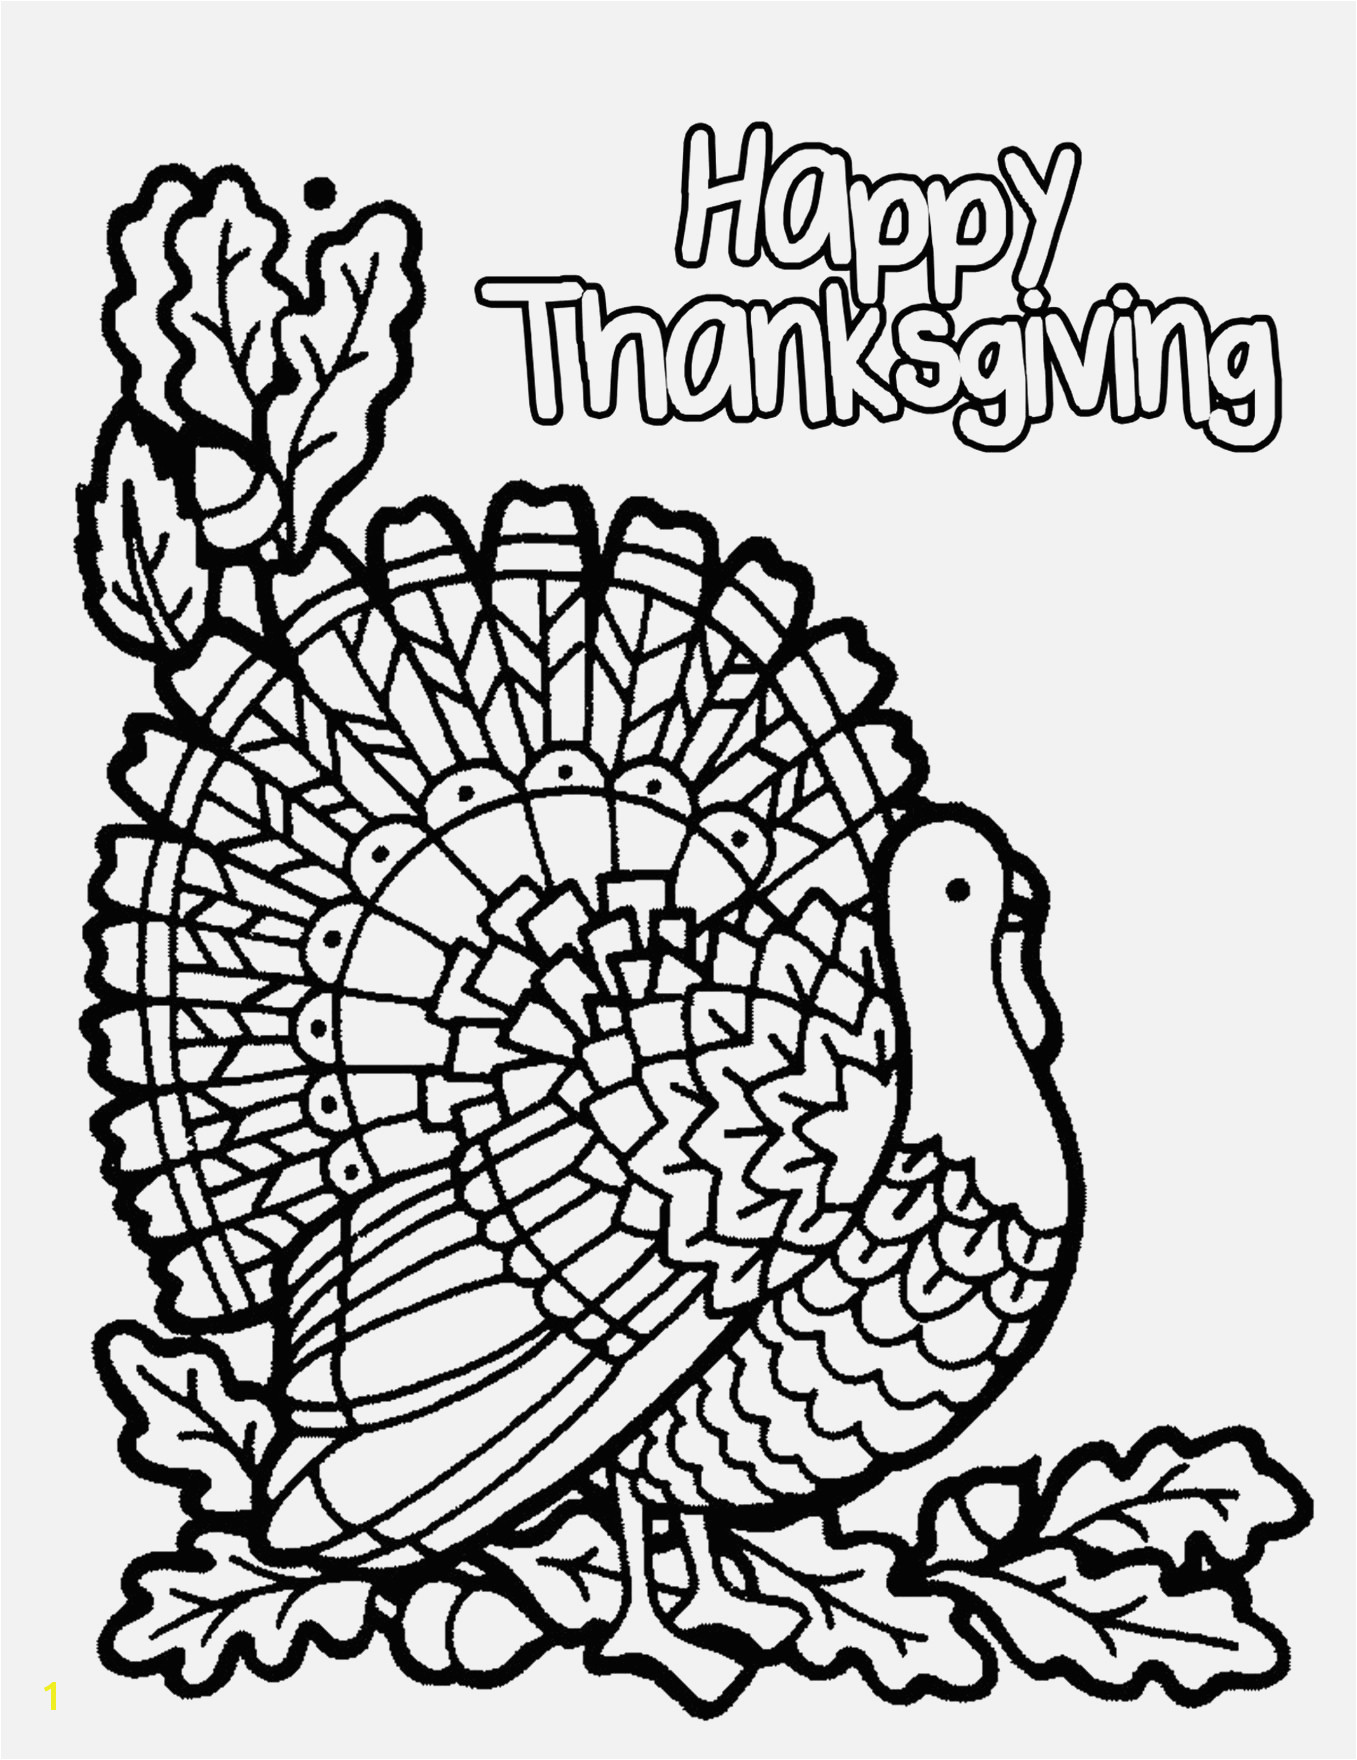 A Turkey for Thanksgiving Coloring Pages Free Printable Thanksgiving Coloring Pages top Free Printable